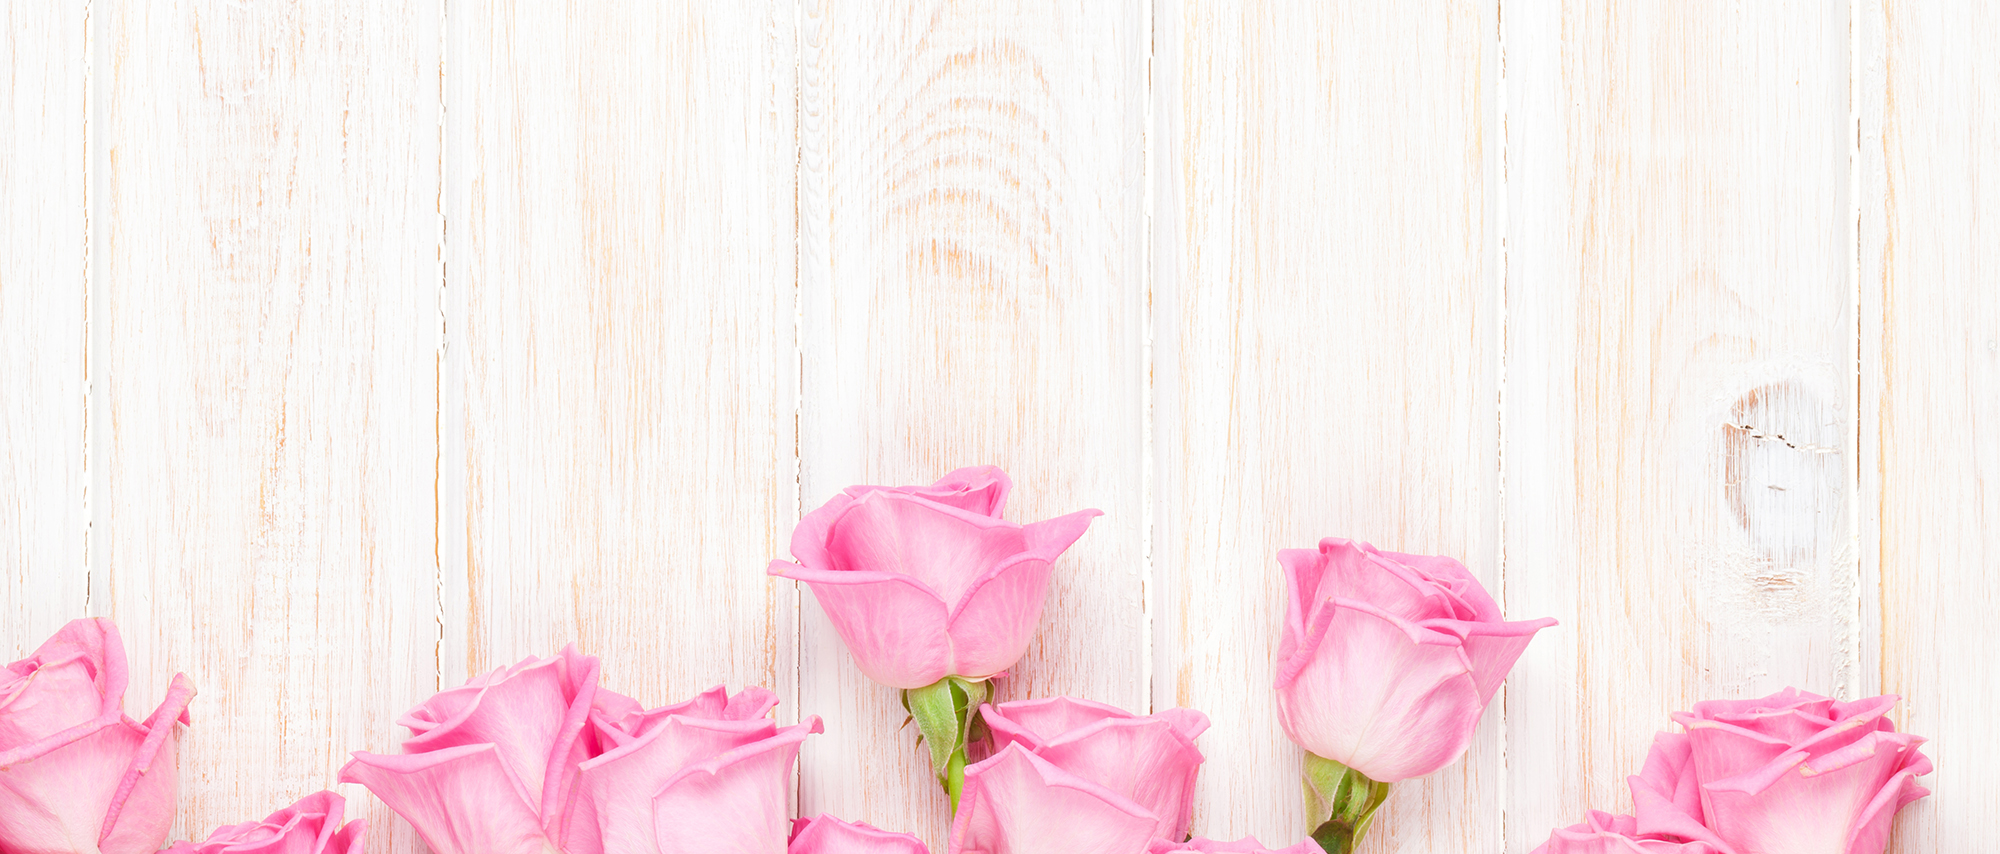 Pink Roses Background Happy Valentines Day Valentines Day Pink Background Image For Free Download